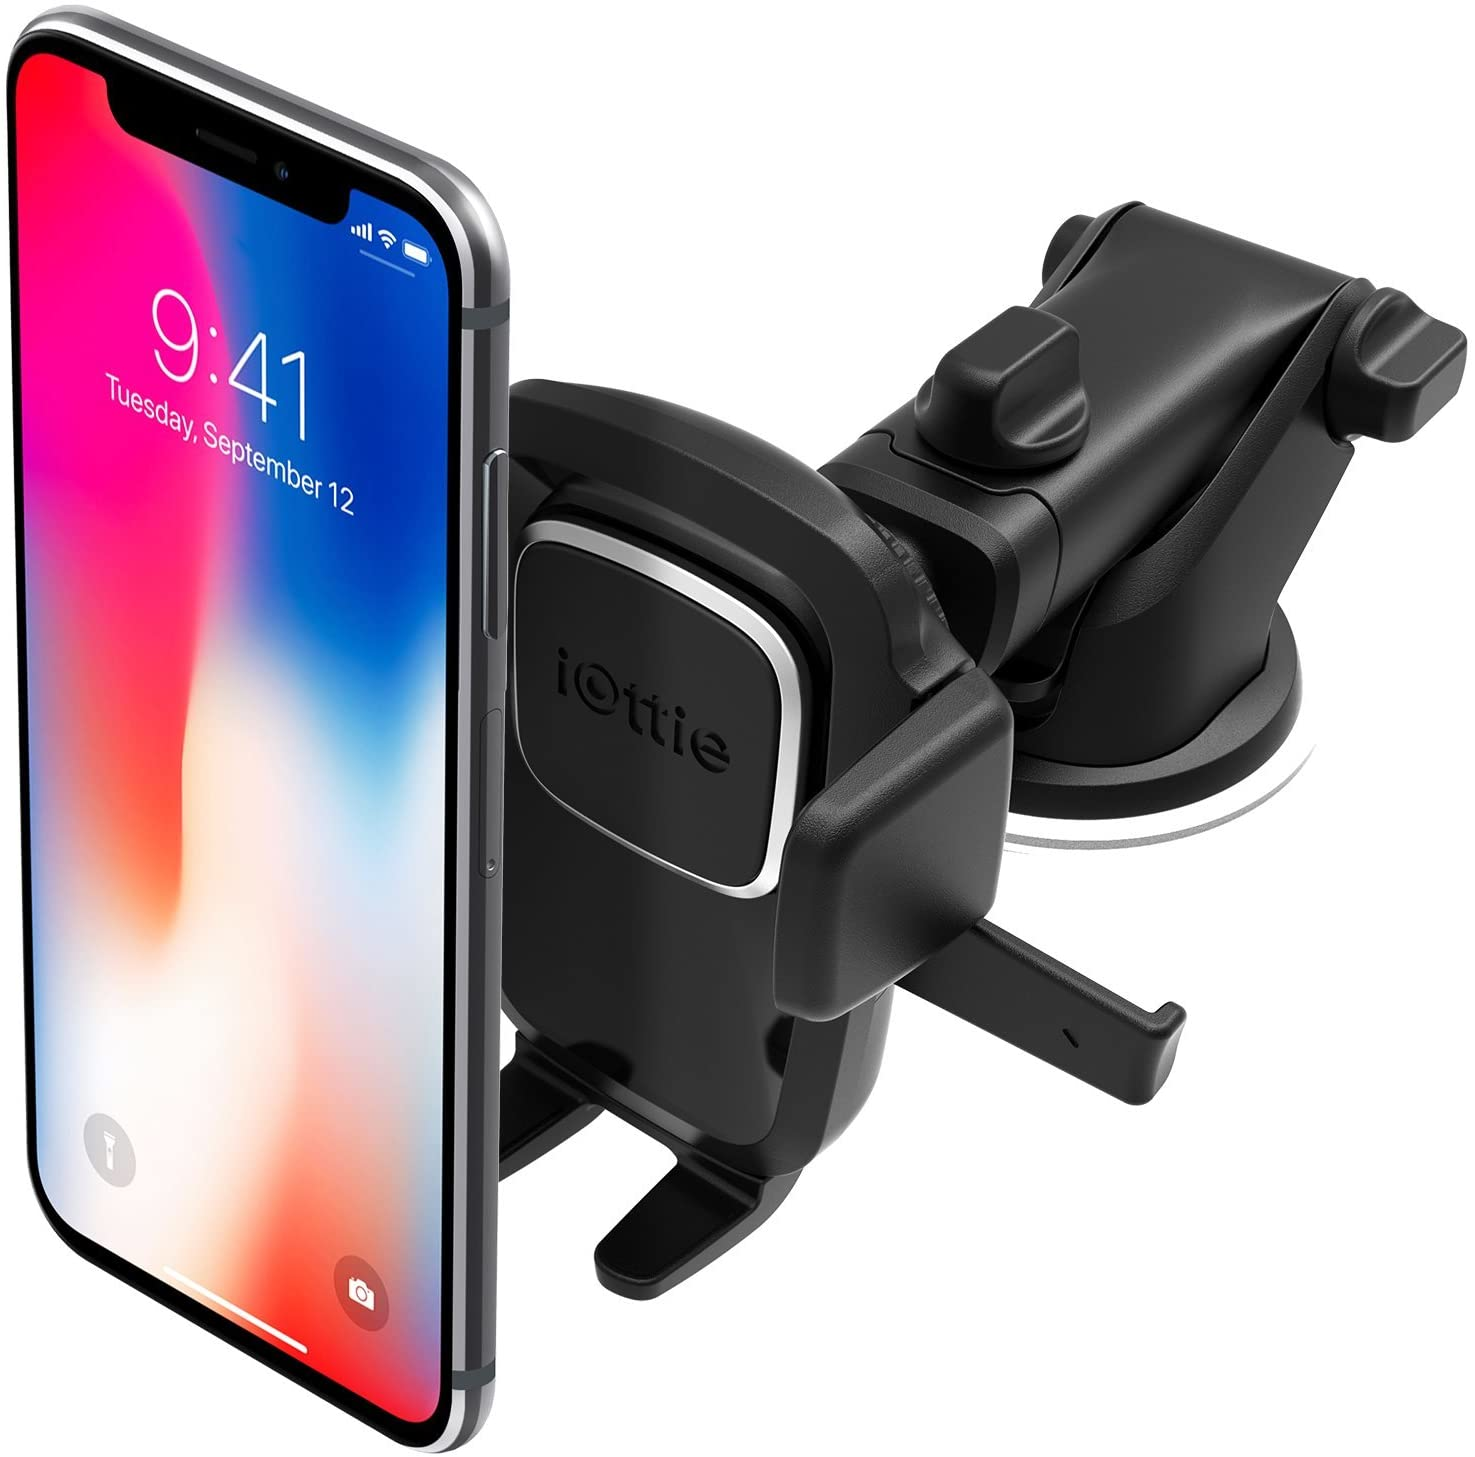 Iottie Easy One Touch Toyota Tacoma Smartphone Holder